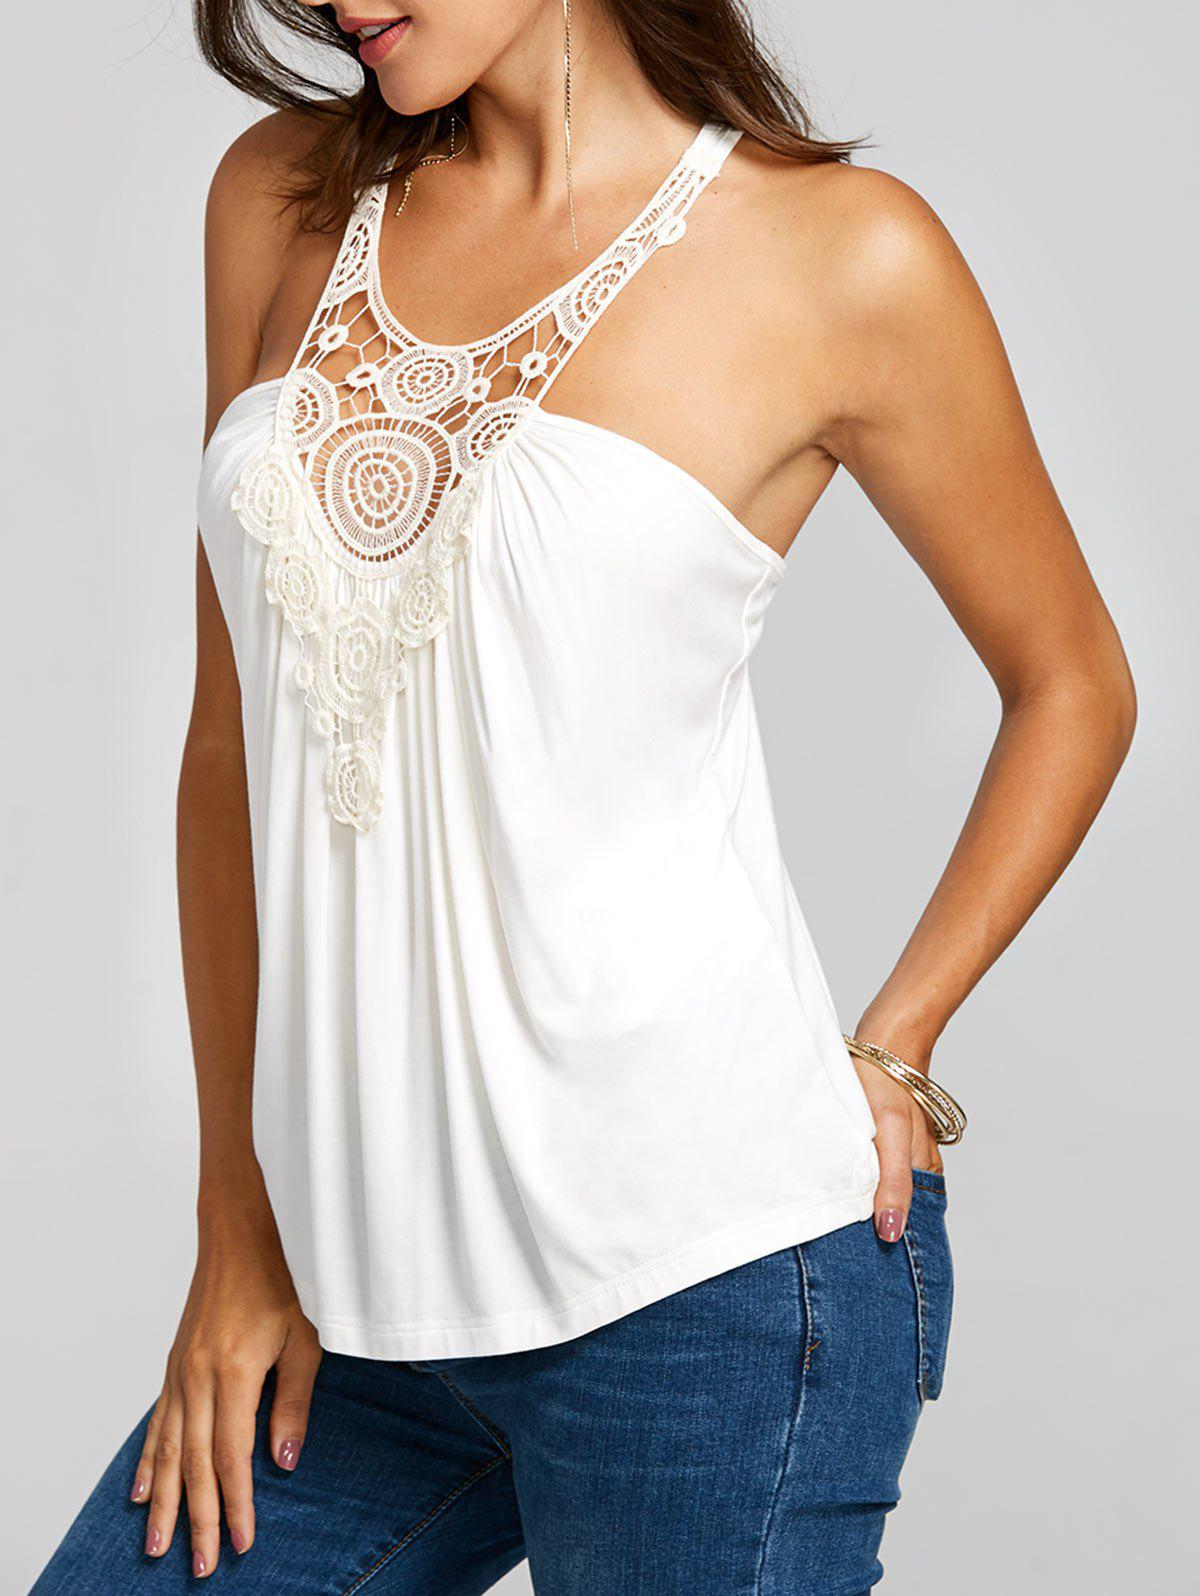 Shops Openwork Lace Peasant Tank Top